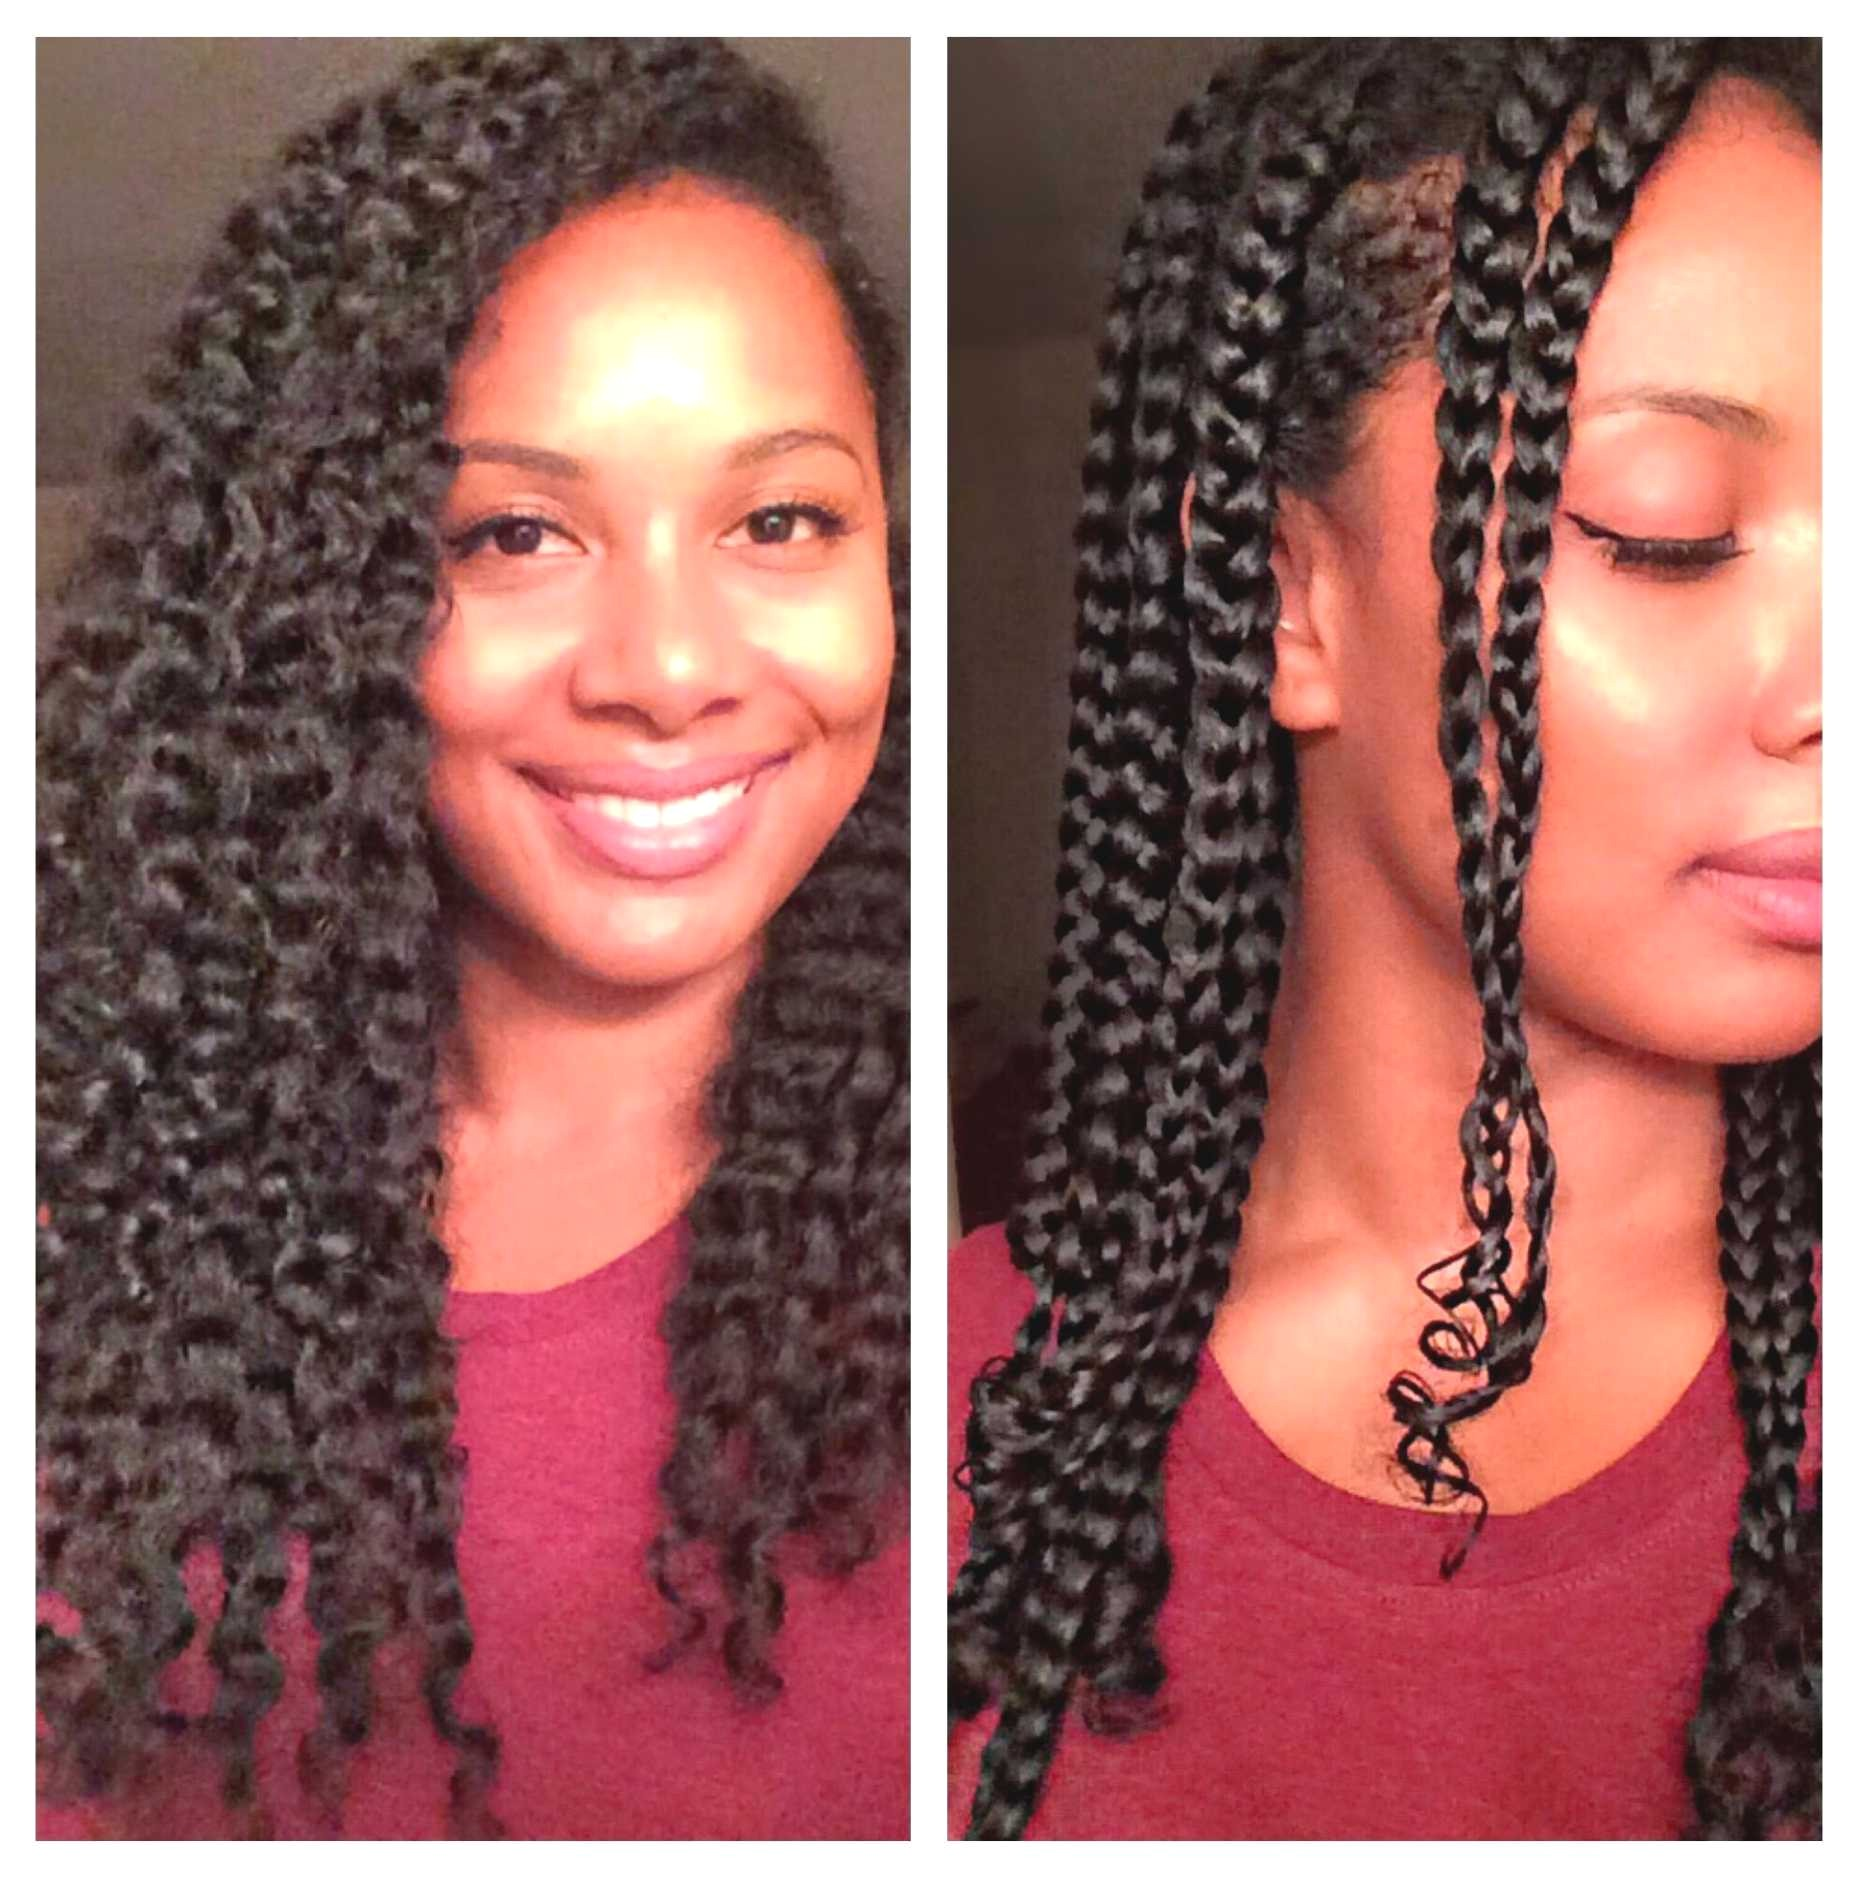 Updo Braid Hairstyles Black Hair Beautiful How to Style Braids Accessibilitefo Updo Braid Hairstyles Black